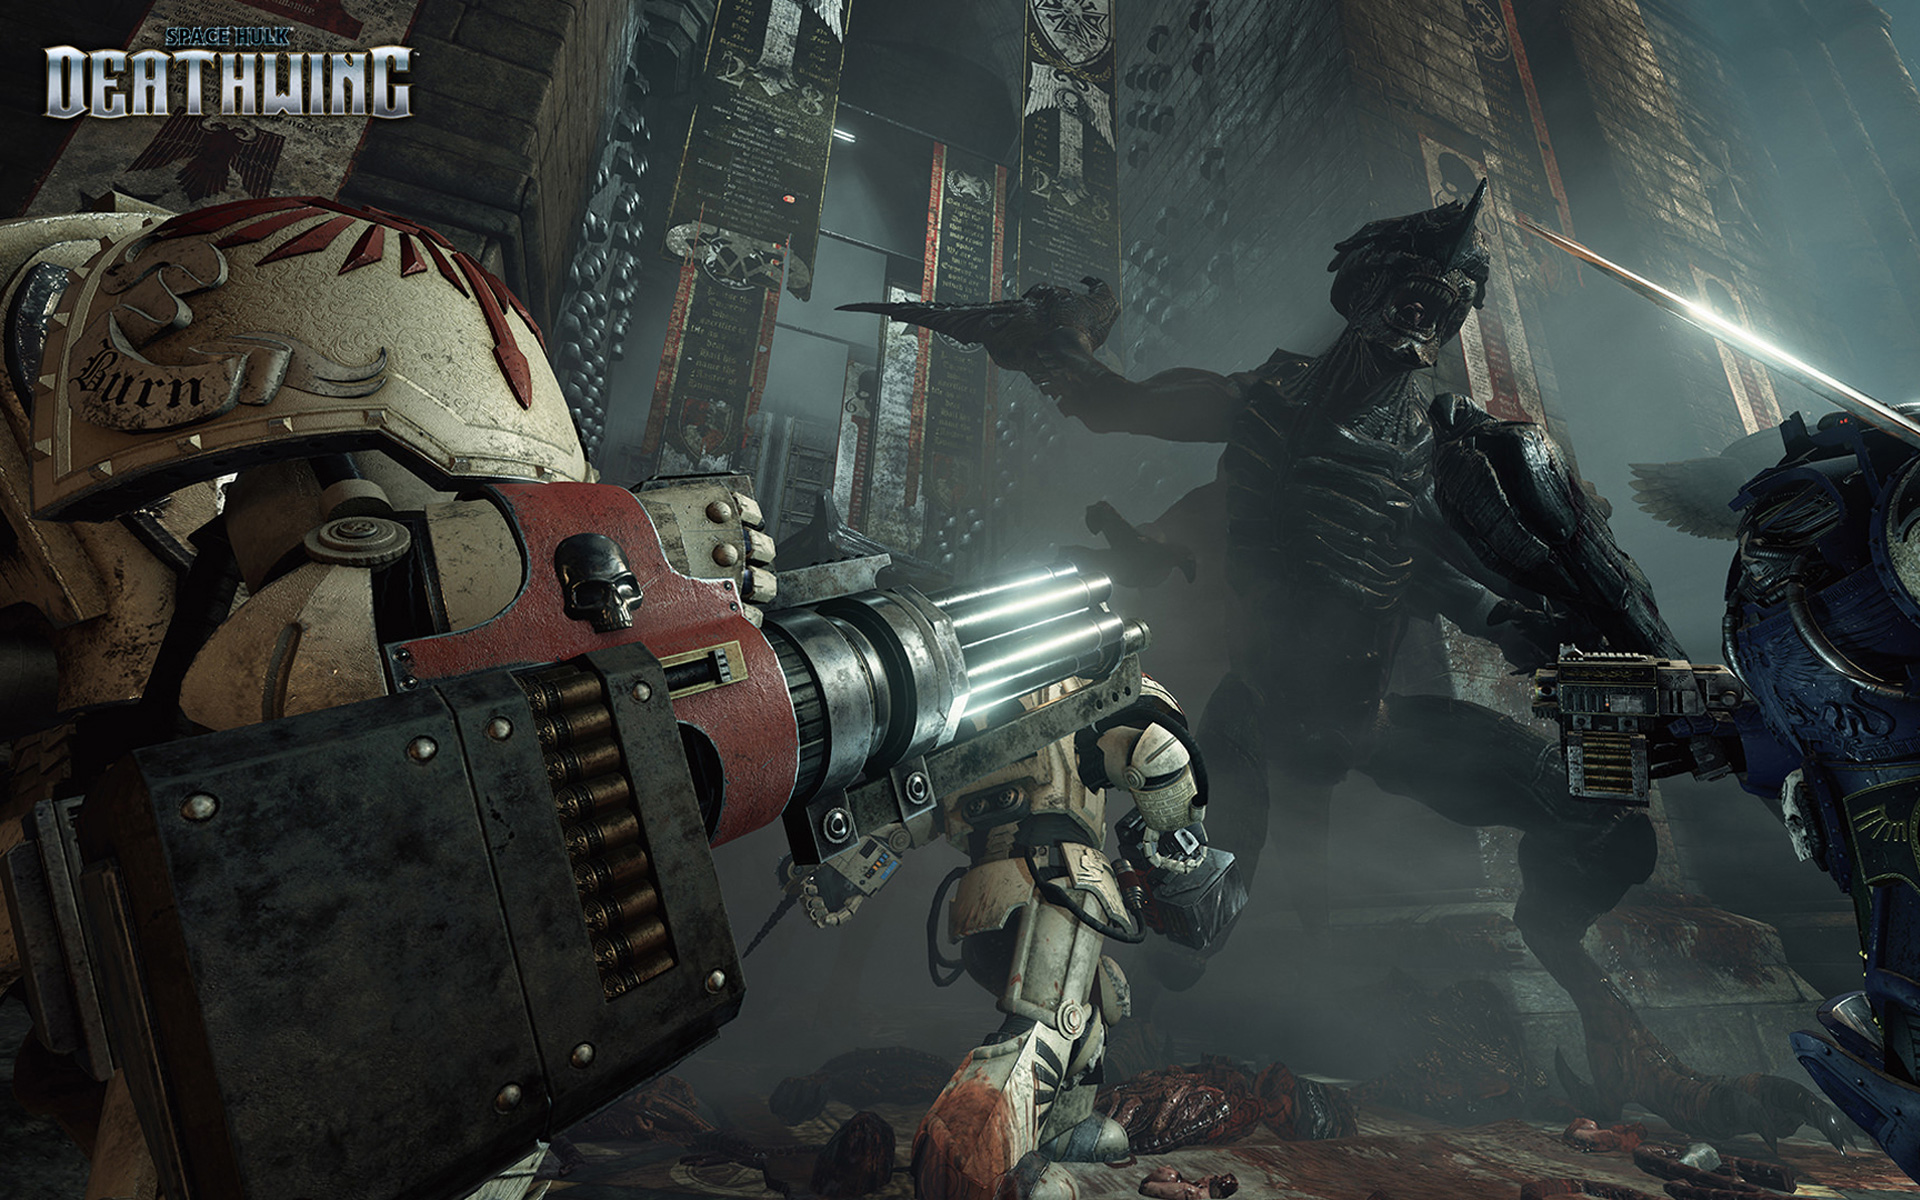 Free Space Hulk: Deathwing Wallpaper in 1920x1200